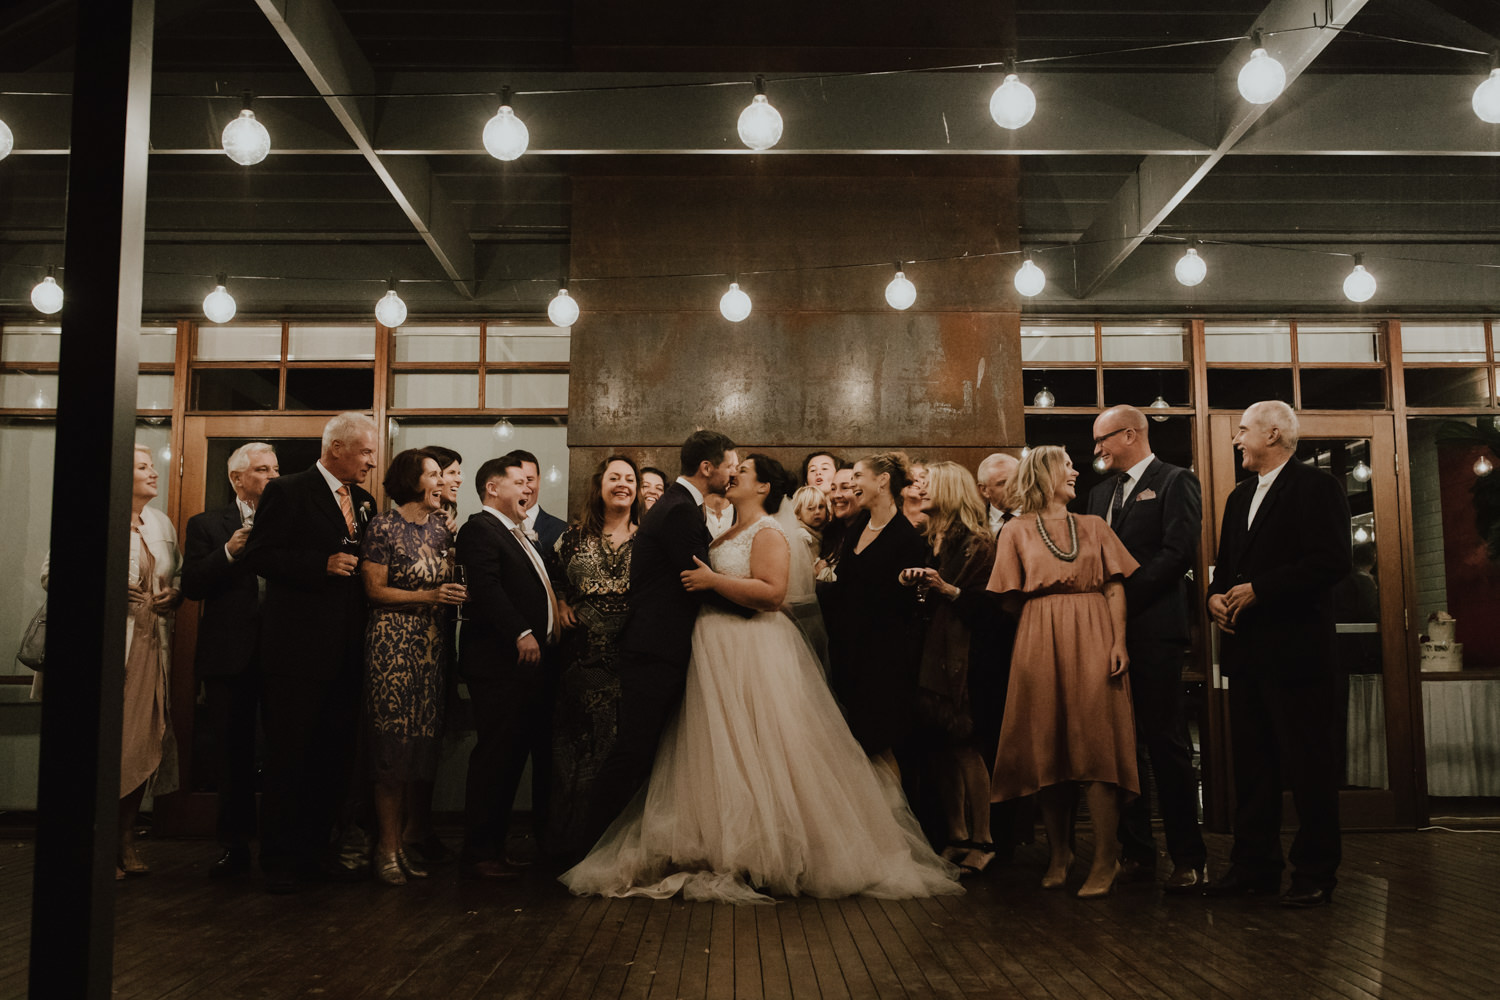 The Boathouse Wedding Reception Canberra - Photography Jenny Wu Straight No Chaser